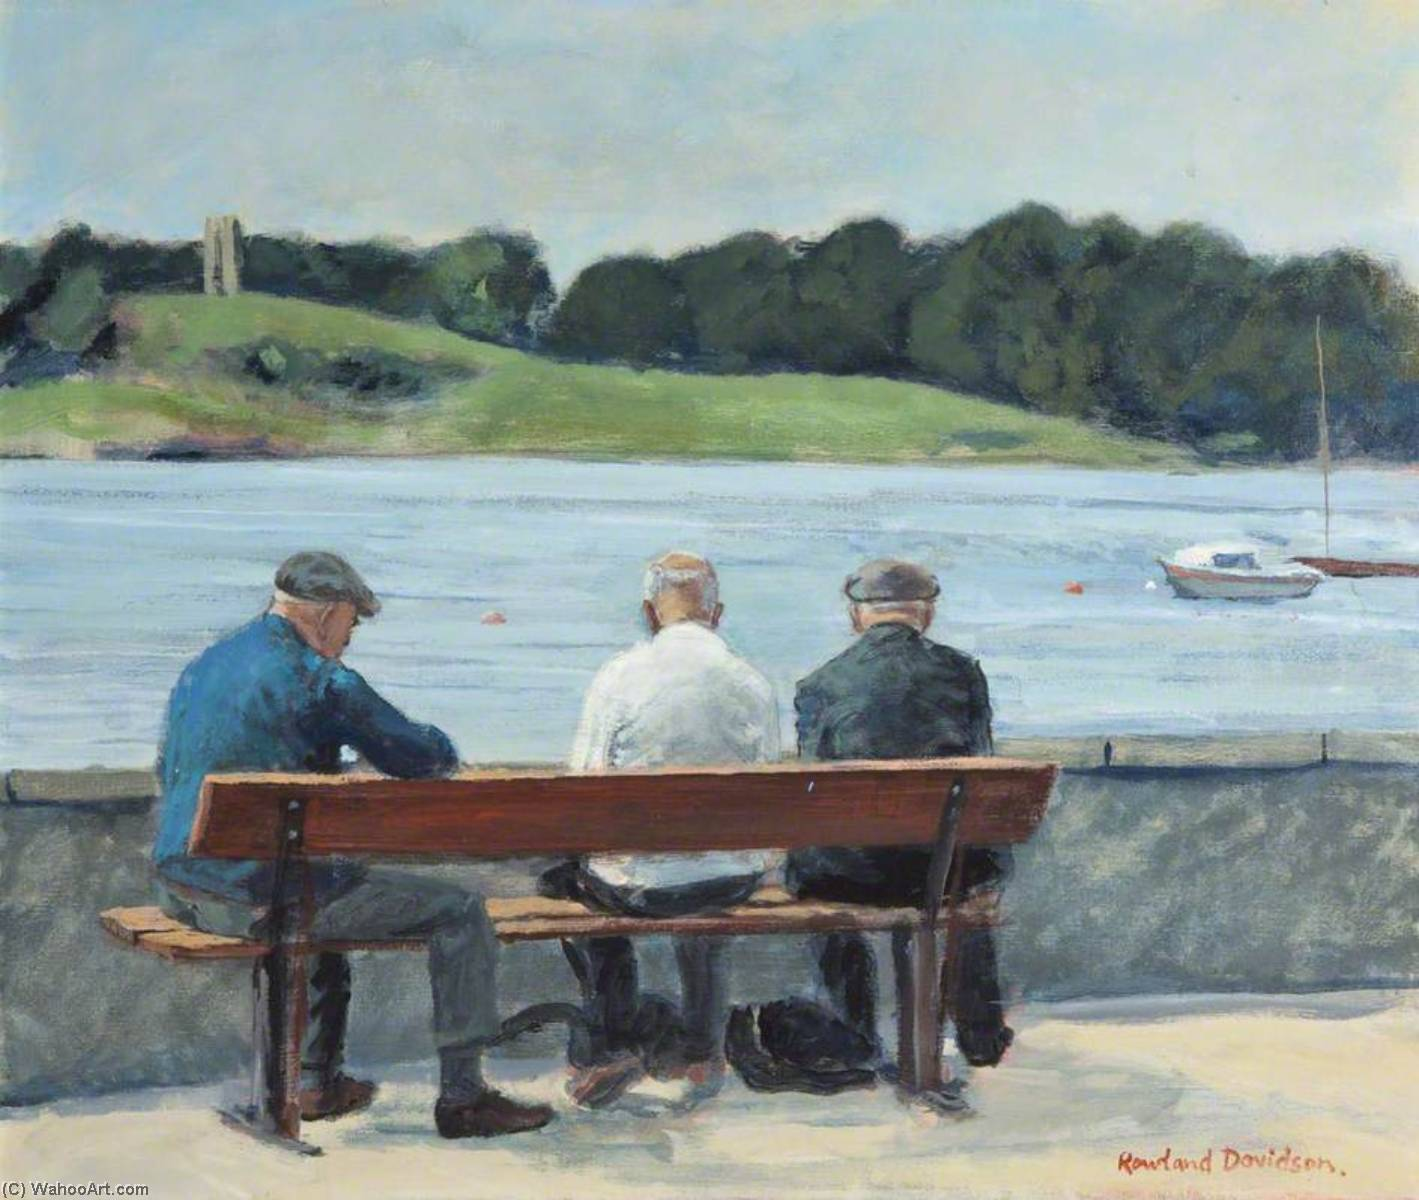 Friendly Chat, Portaferry by Rowland Davidson | Art Reproduction | WahooArt.com